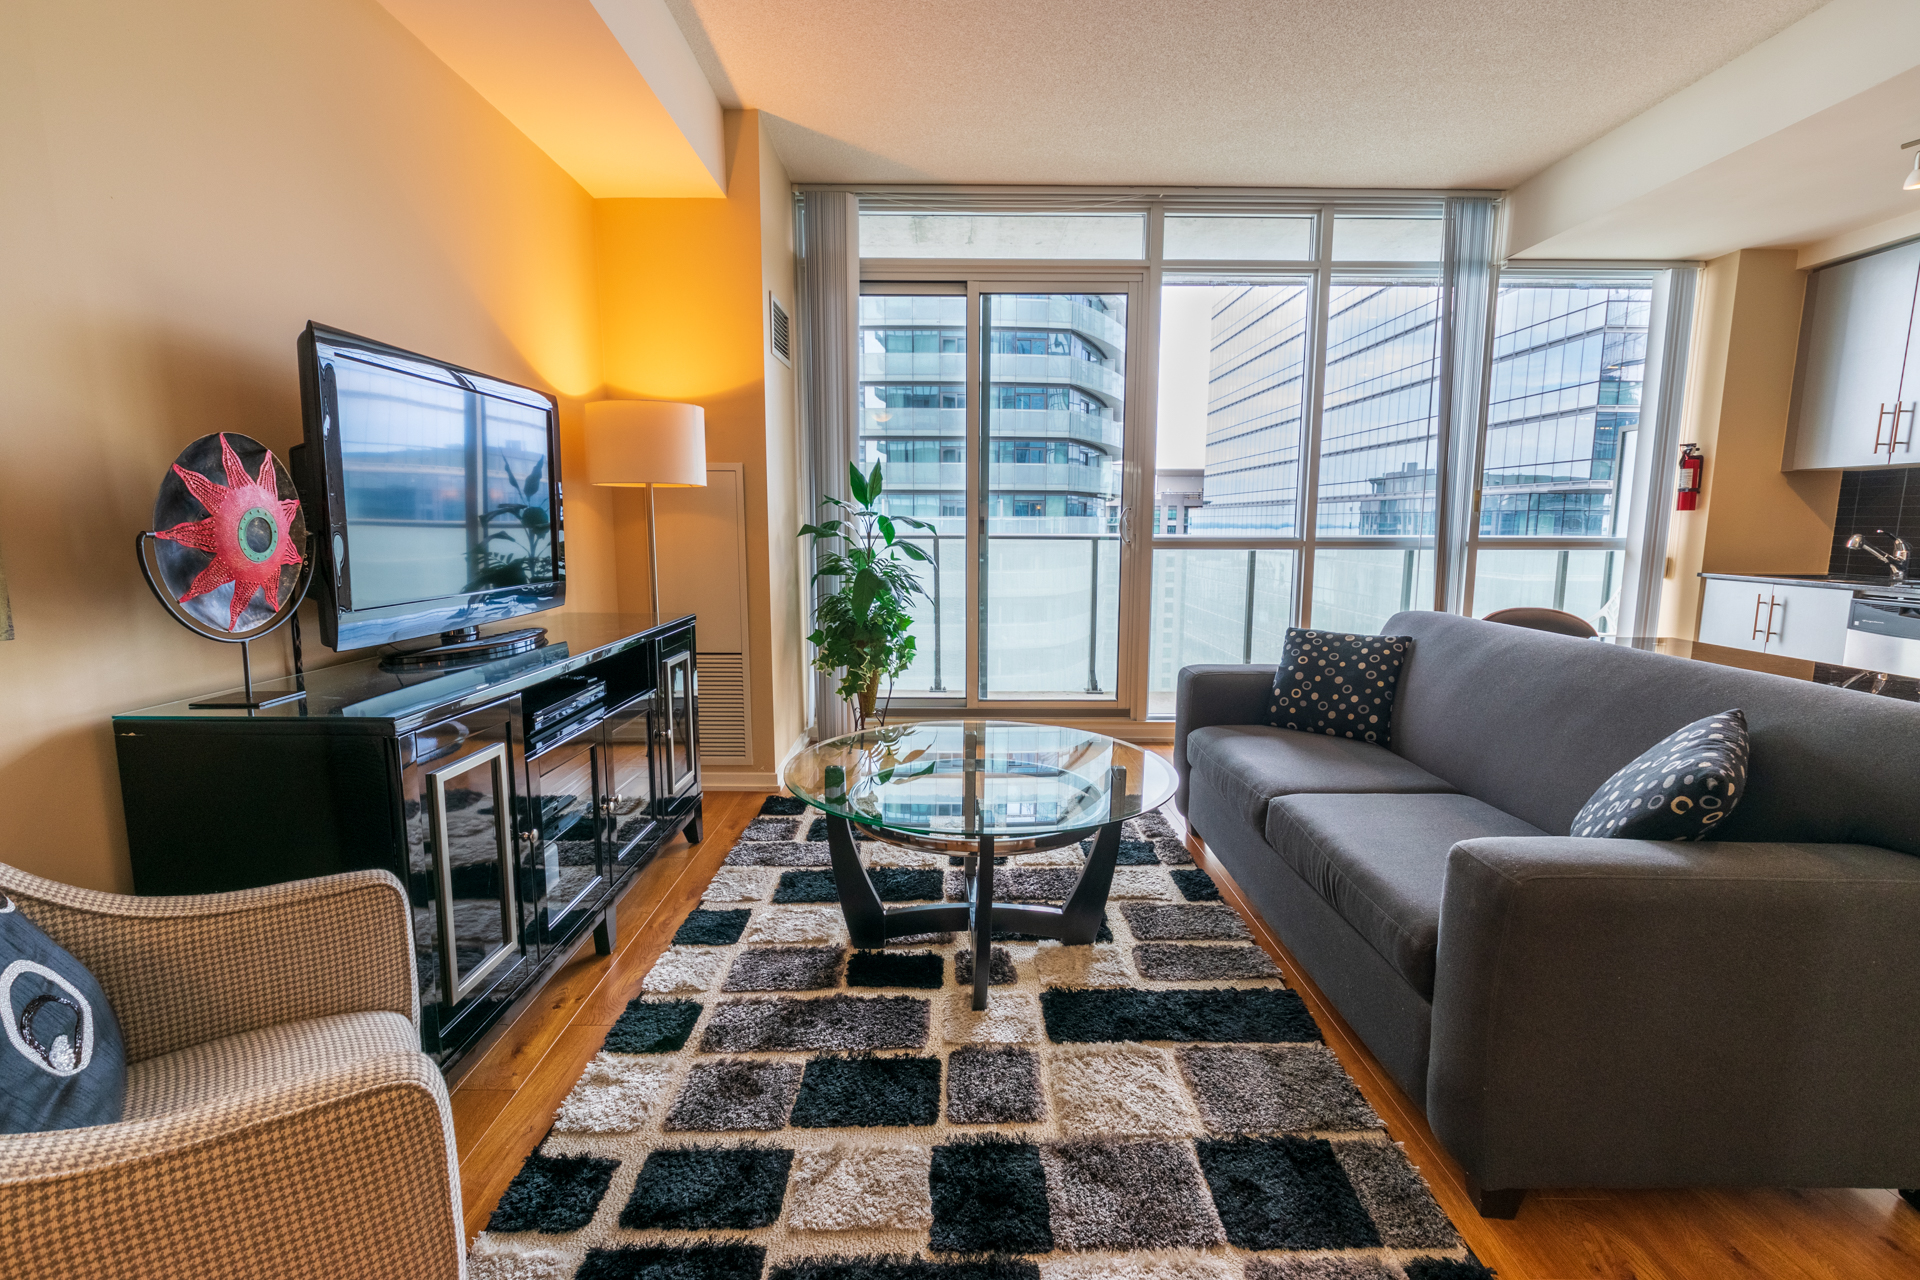 Apartment Rental at Maple Leaf Square Downtown Toronto. Living Room, Sofa